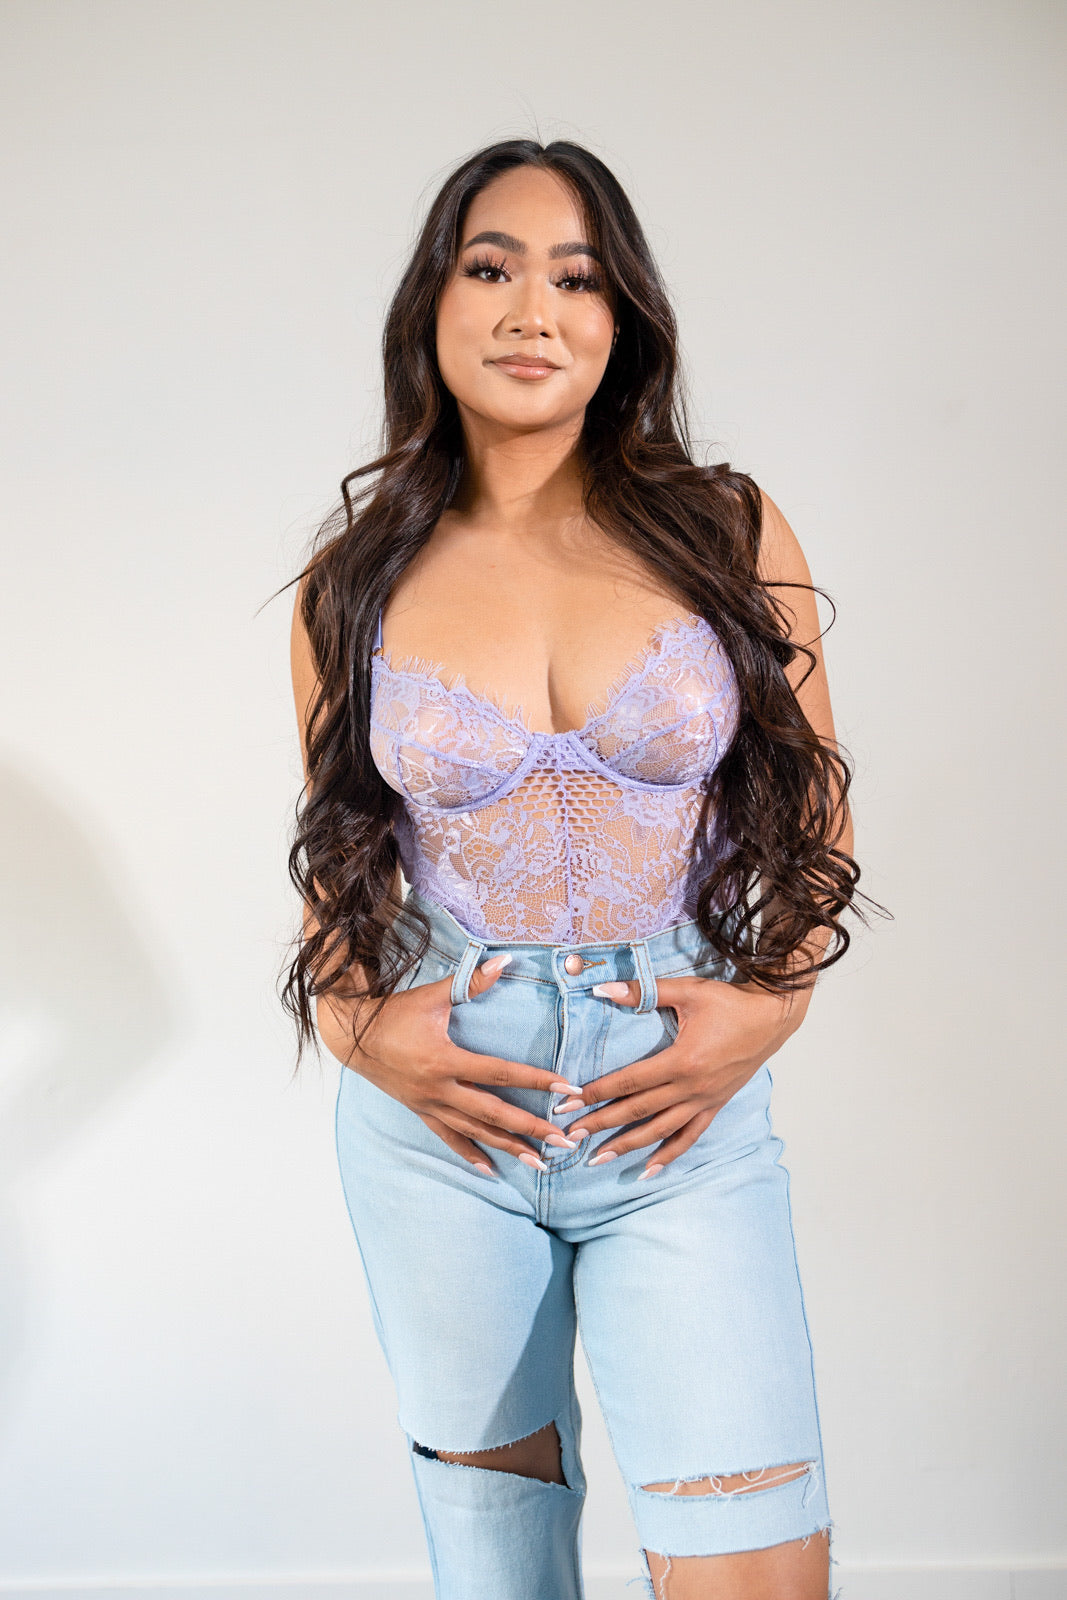 The Brielle Mesh Bodysuit in lavender is the perfect top to pair with jeans for a cute date night look. This bodysuit features underwire , adjustable straps, stretch, hook and eye closure. Bodysuit has no lining in cups.